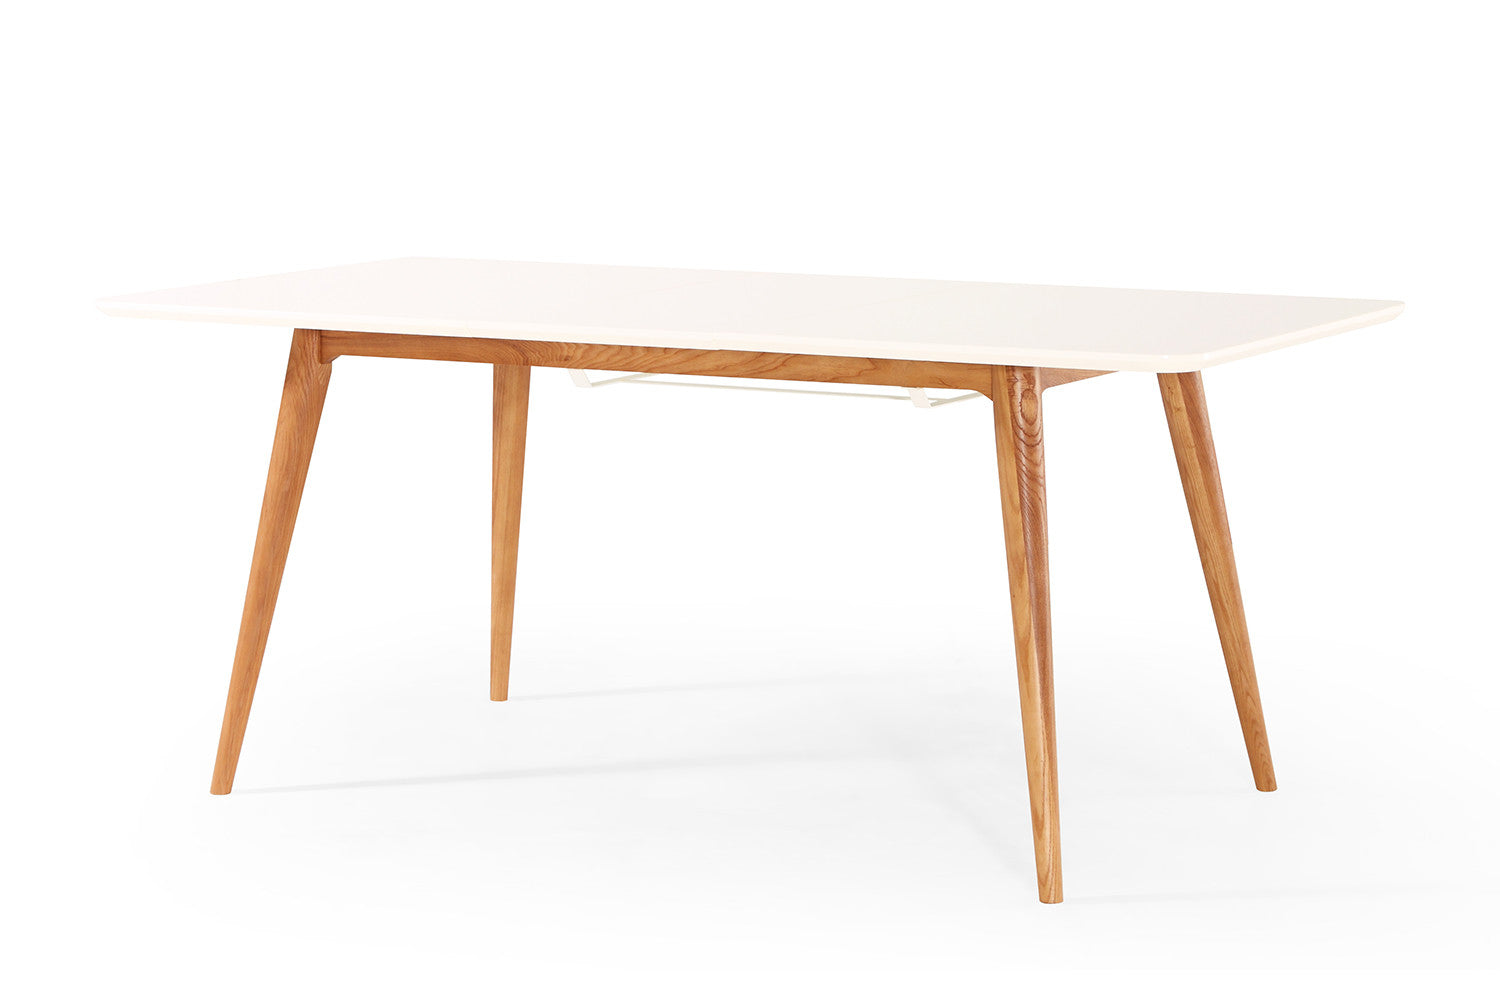 Table salle a manger scandinave extensible for Table scandinave